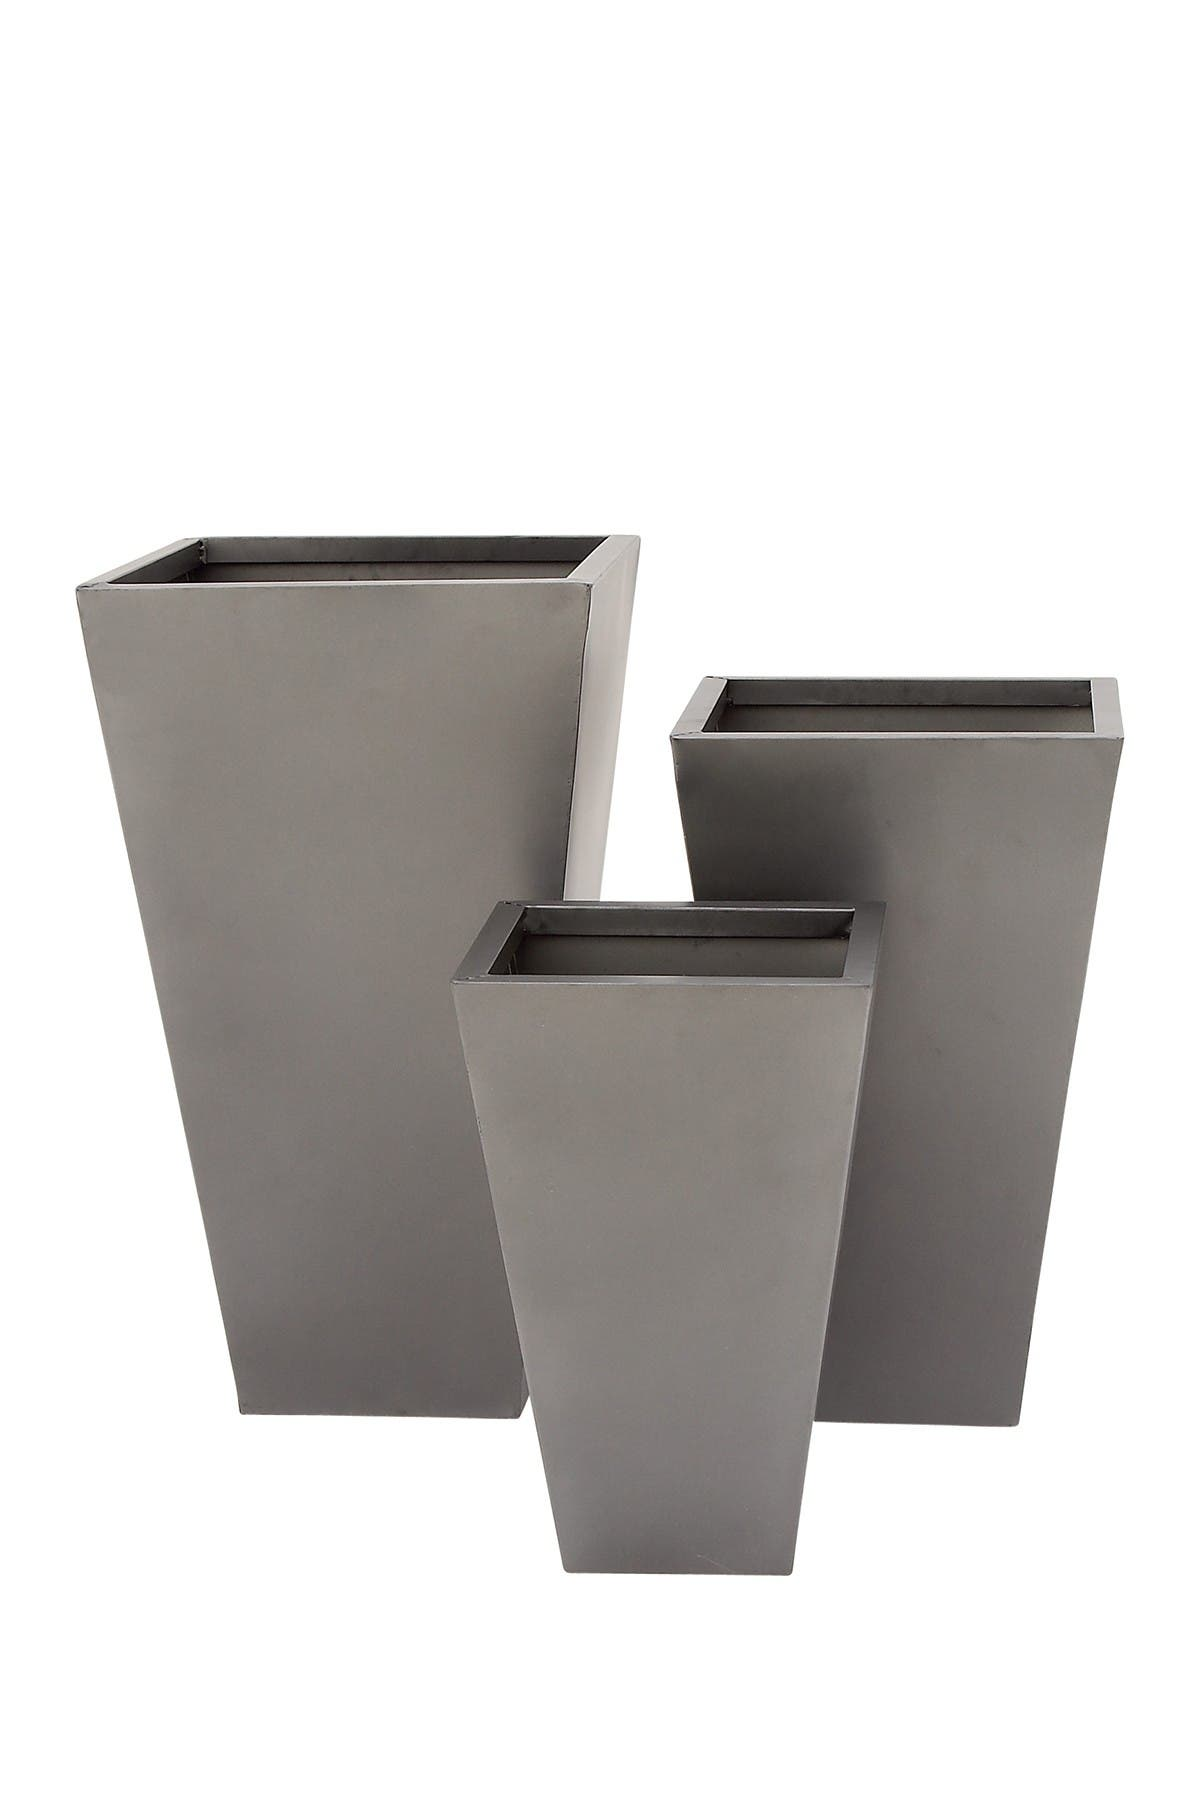 Image of Willow Row Grey Metal Tapered Square Contemporary Planter - Set of 3